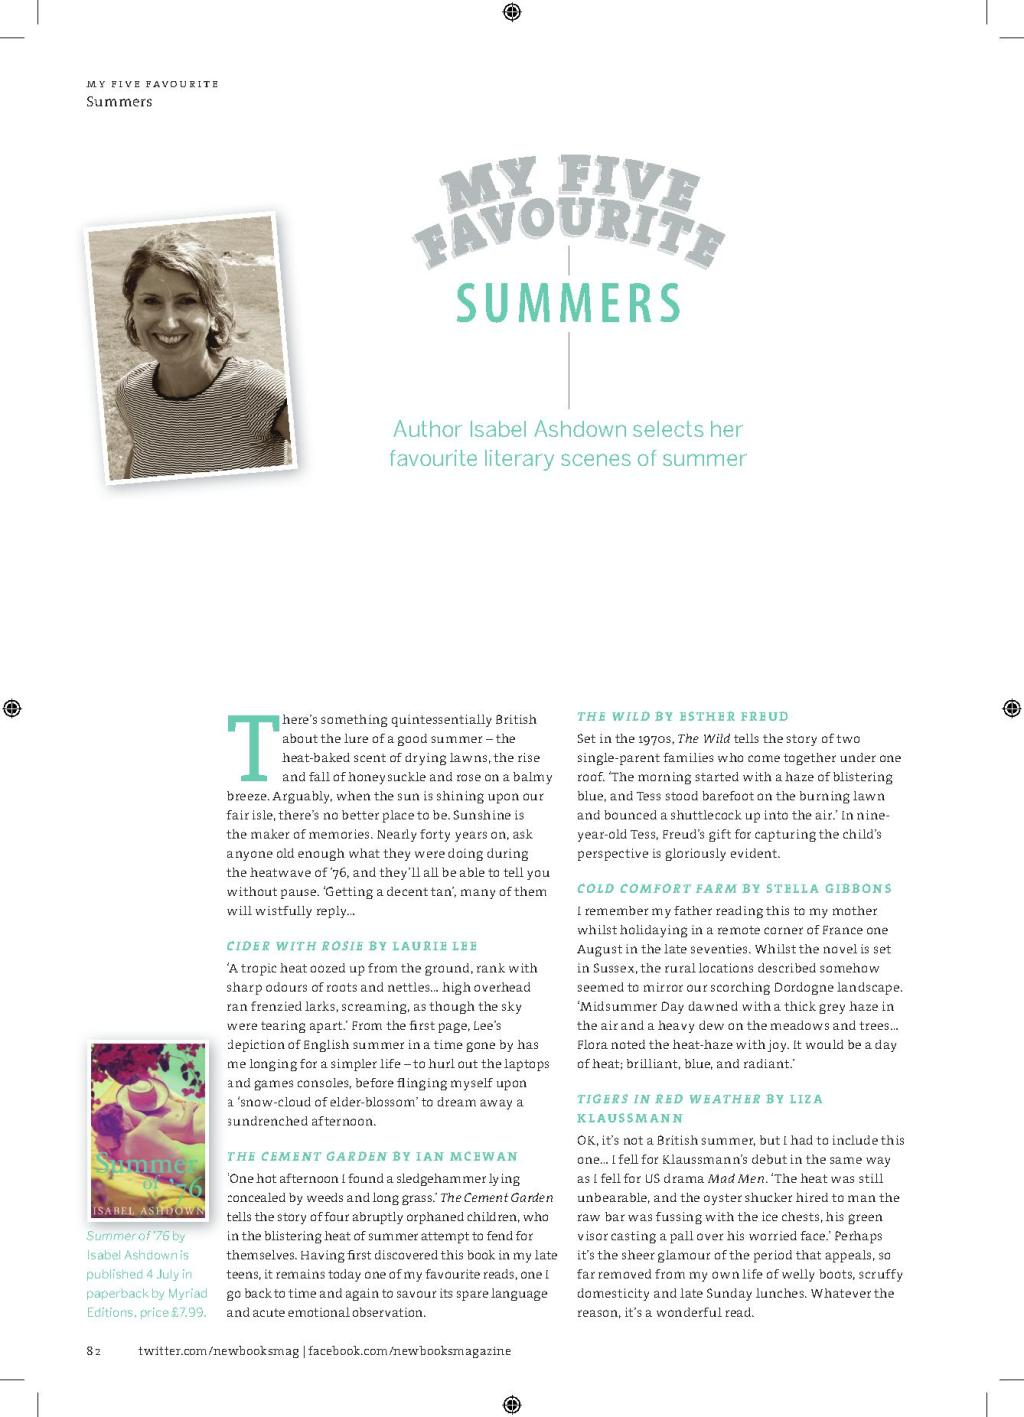 New Books Mag, 5 Fav Summers, May 2013_1